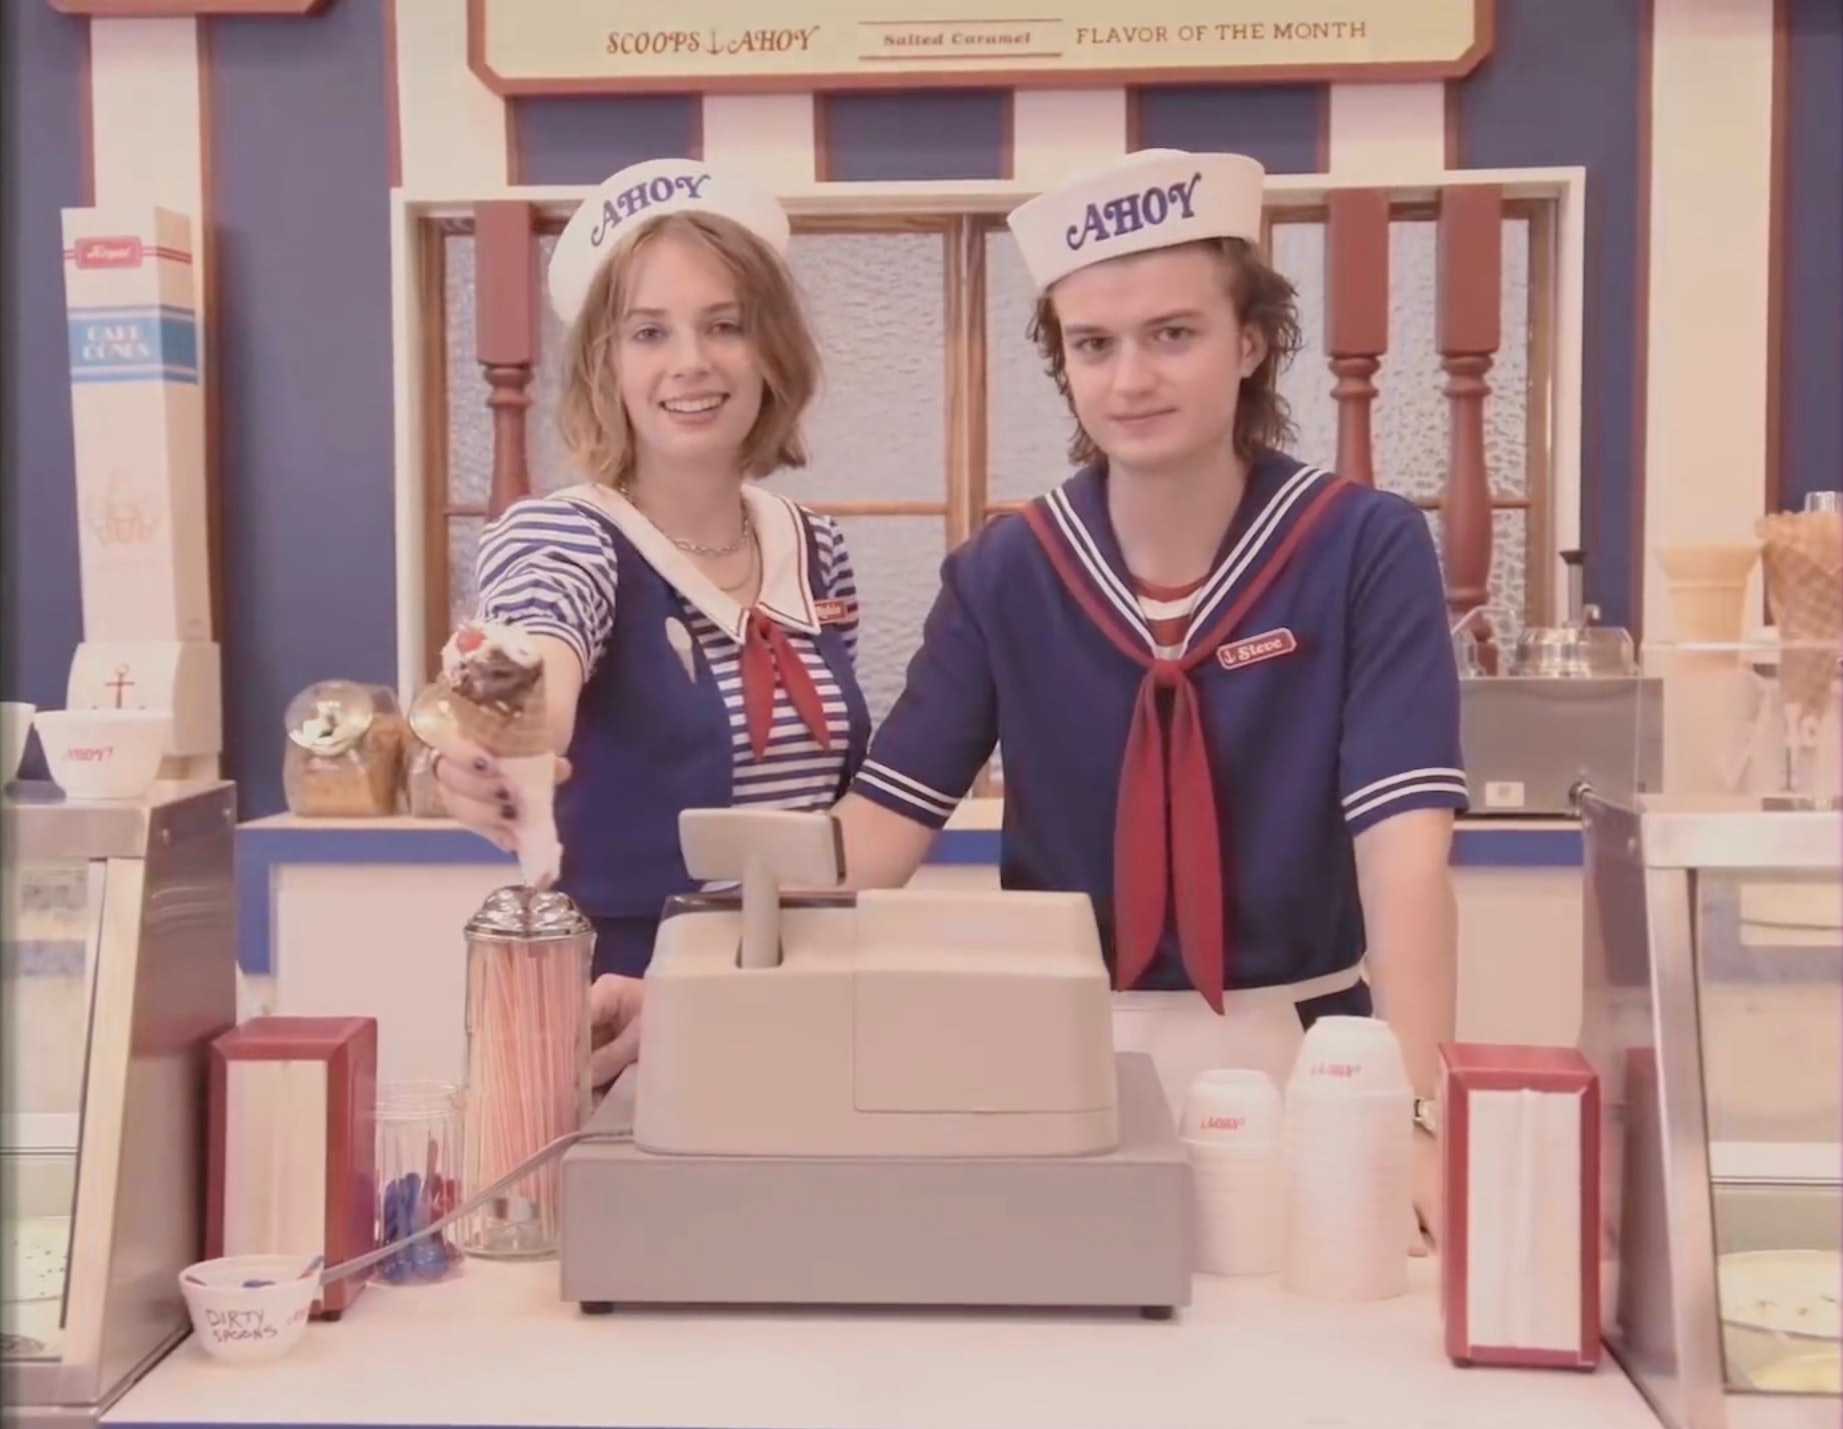 stranger things season 3 starcourt mall ice cream scoops ahoy